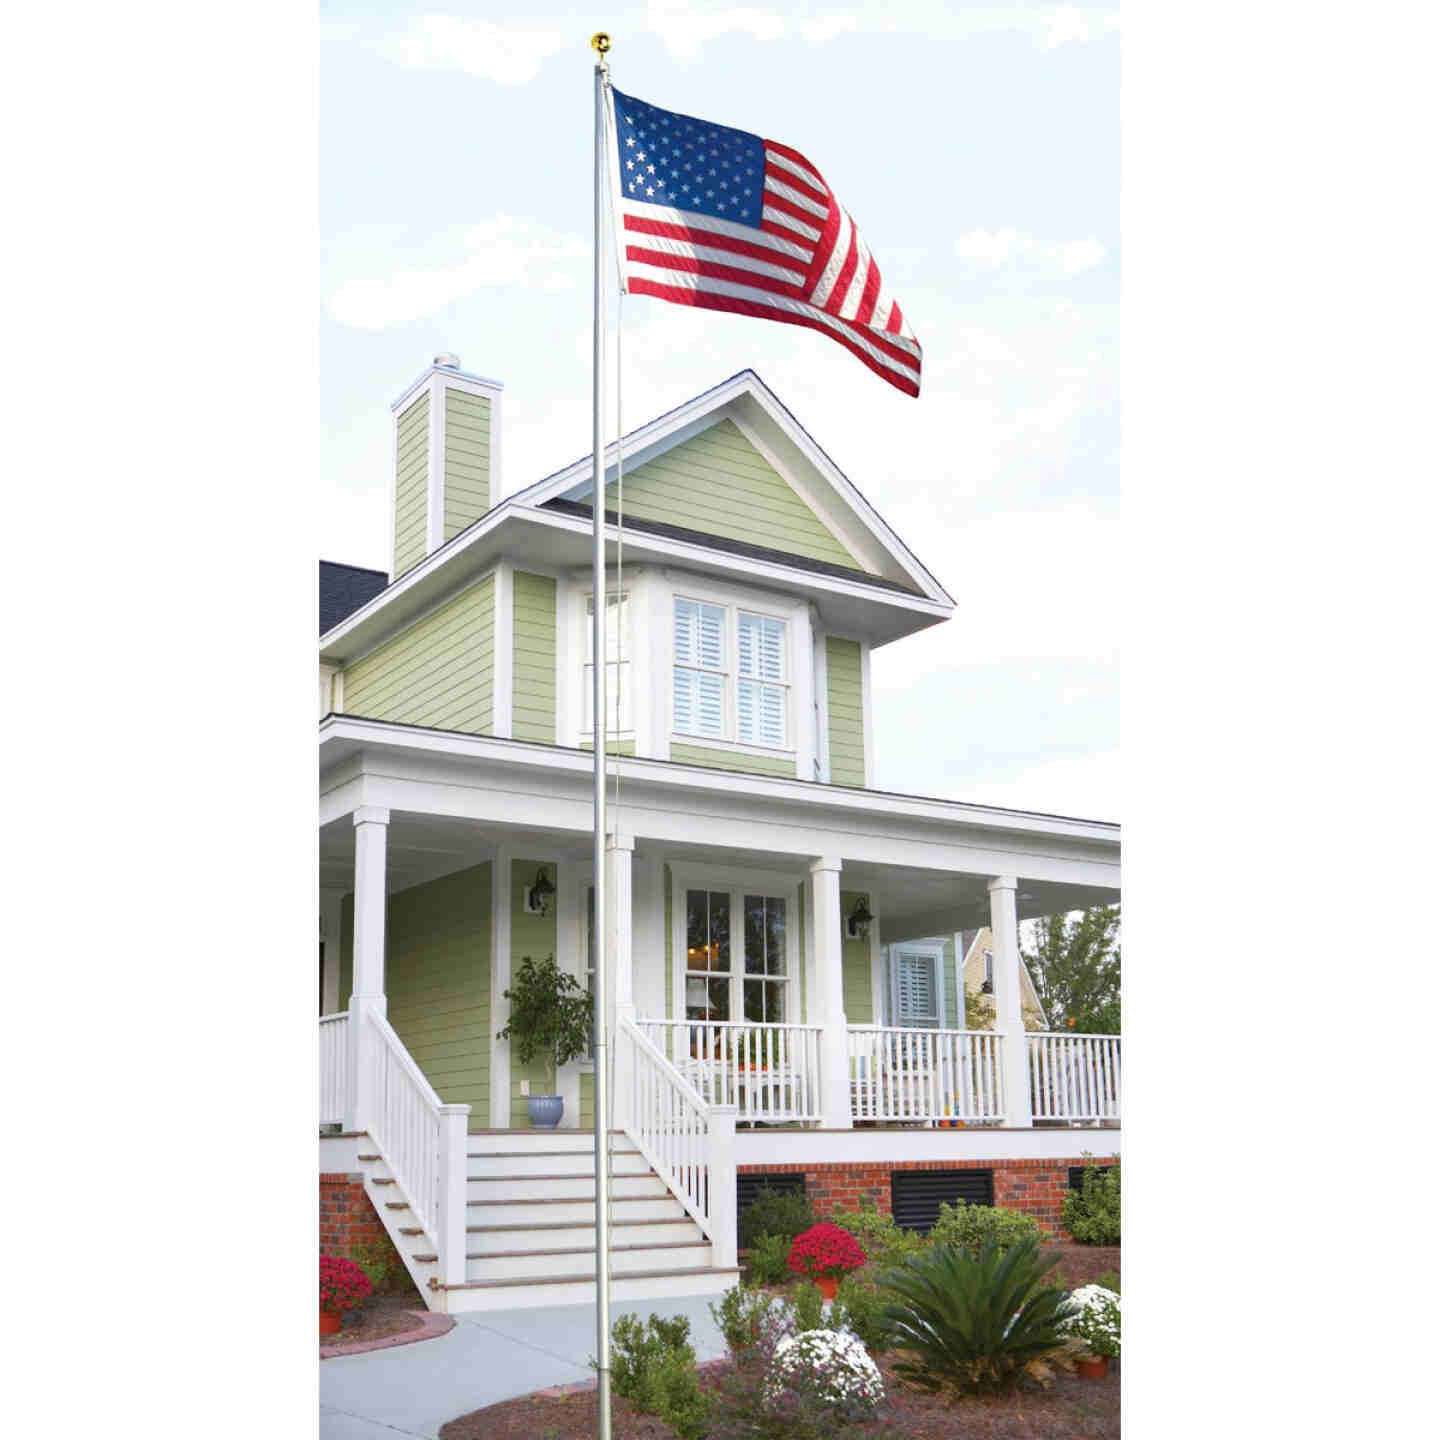 Valley Forge 3 Ft. x 5 Ft. Nylon American Flag & 20 Ft. Pole Kit Image 2